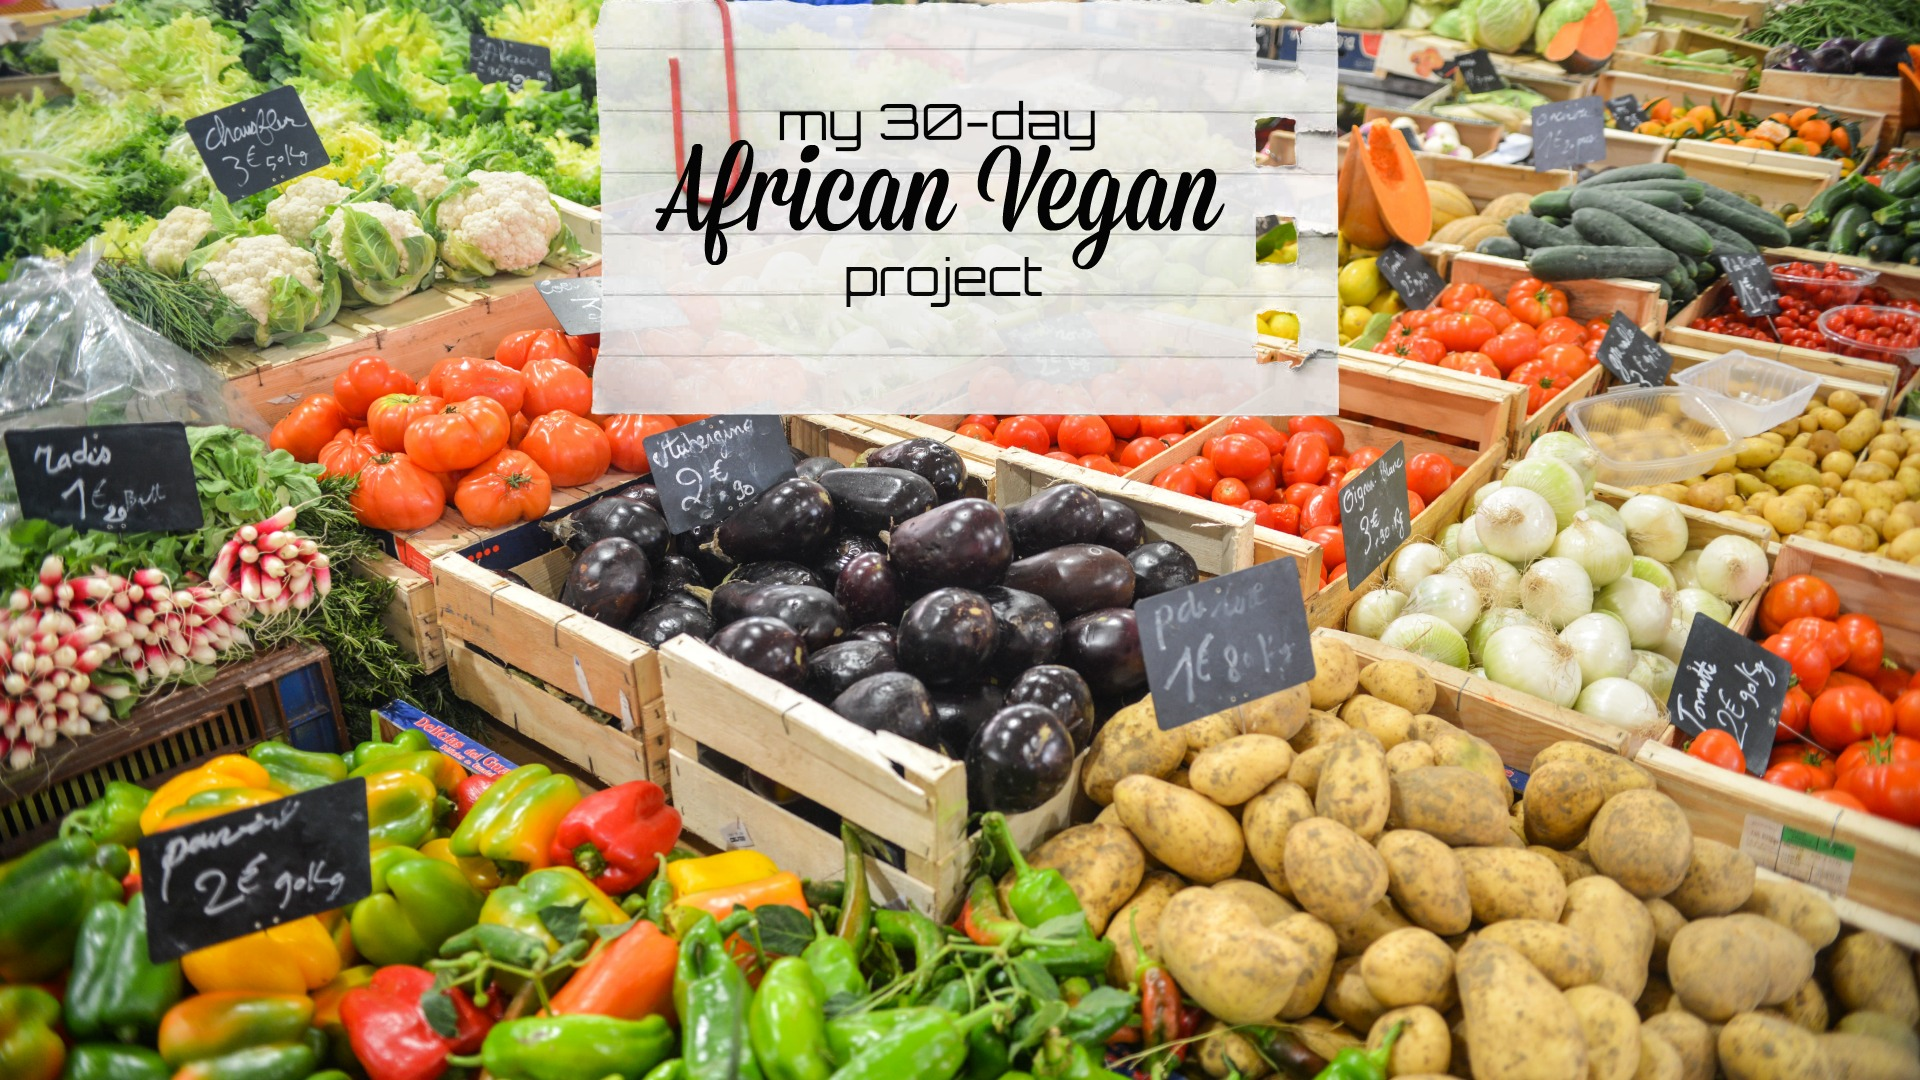 30-day-african-vegan-project